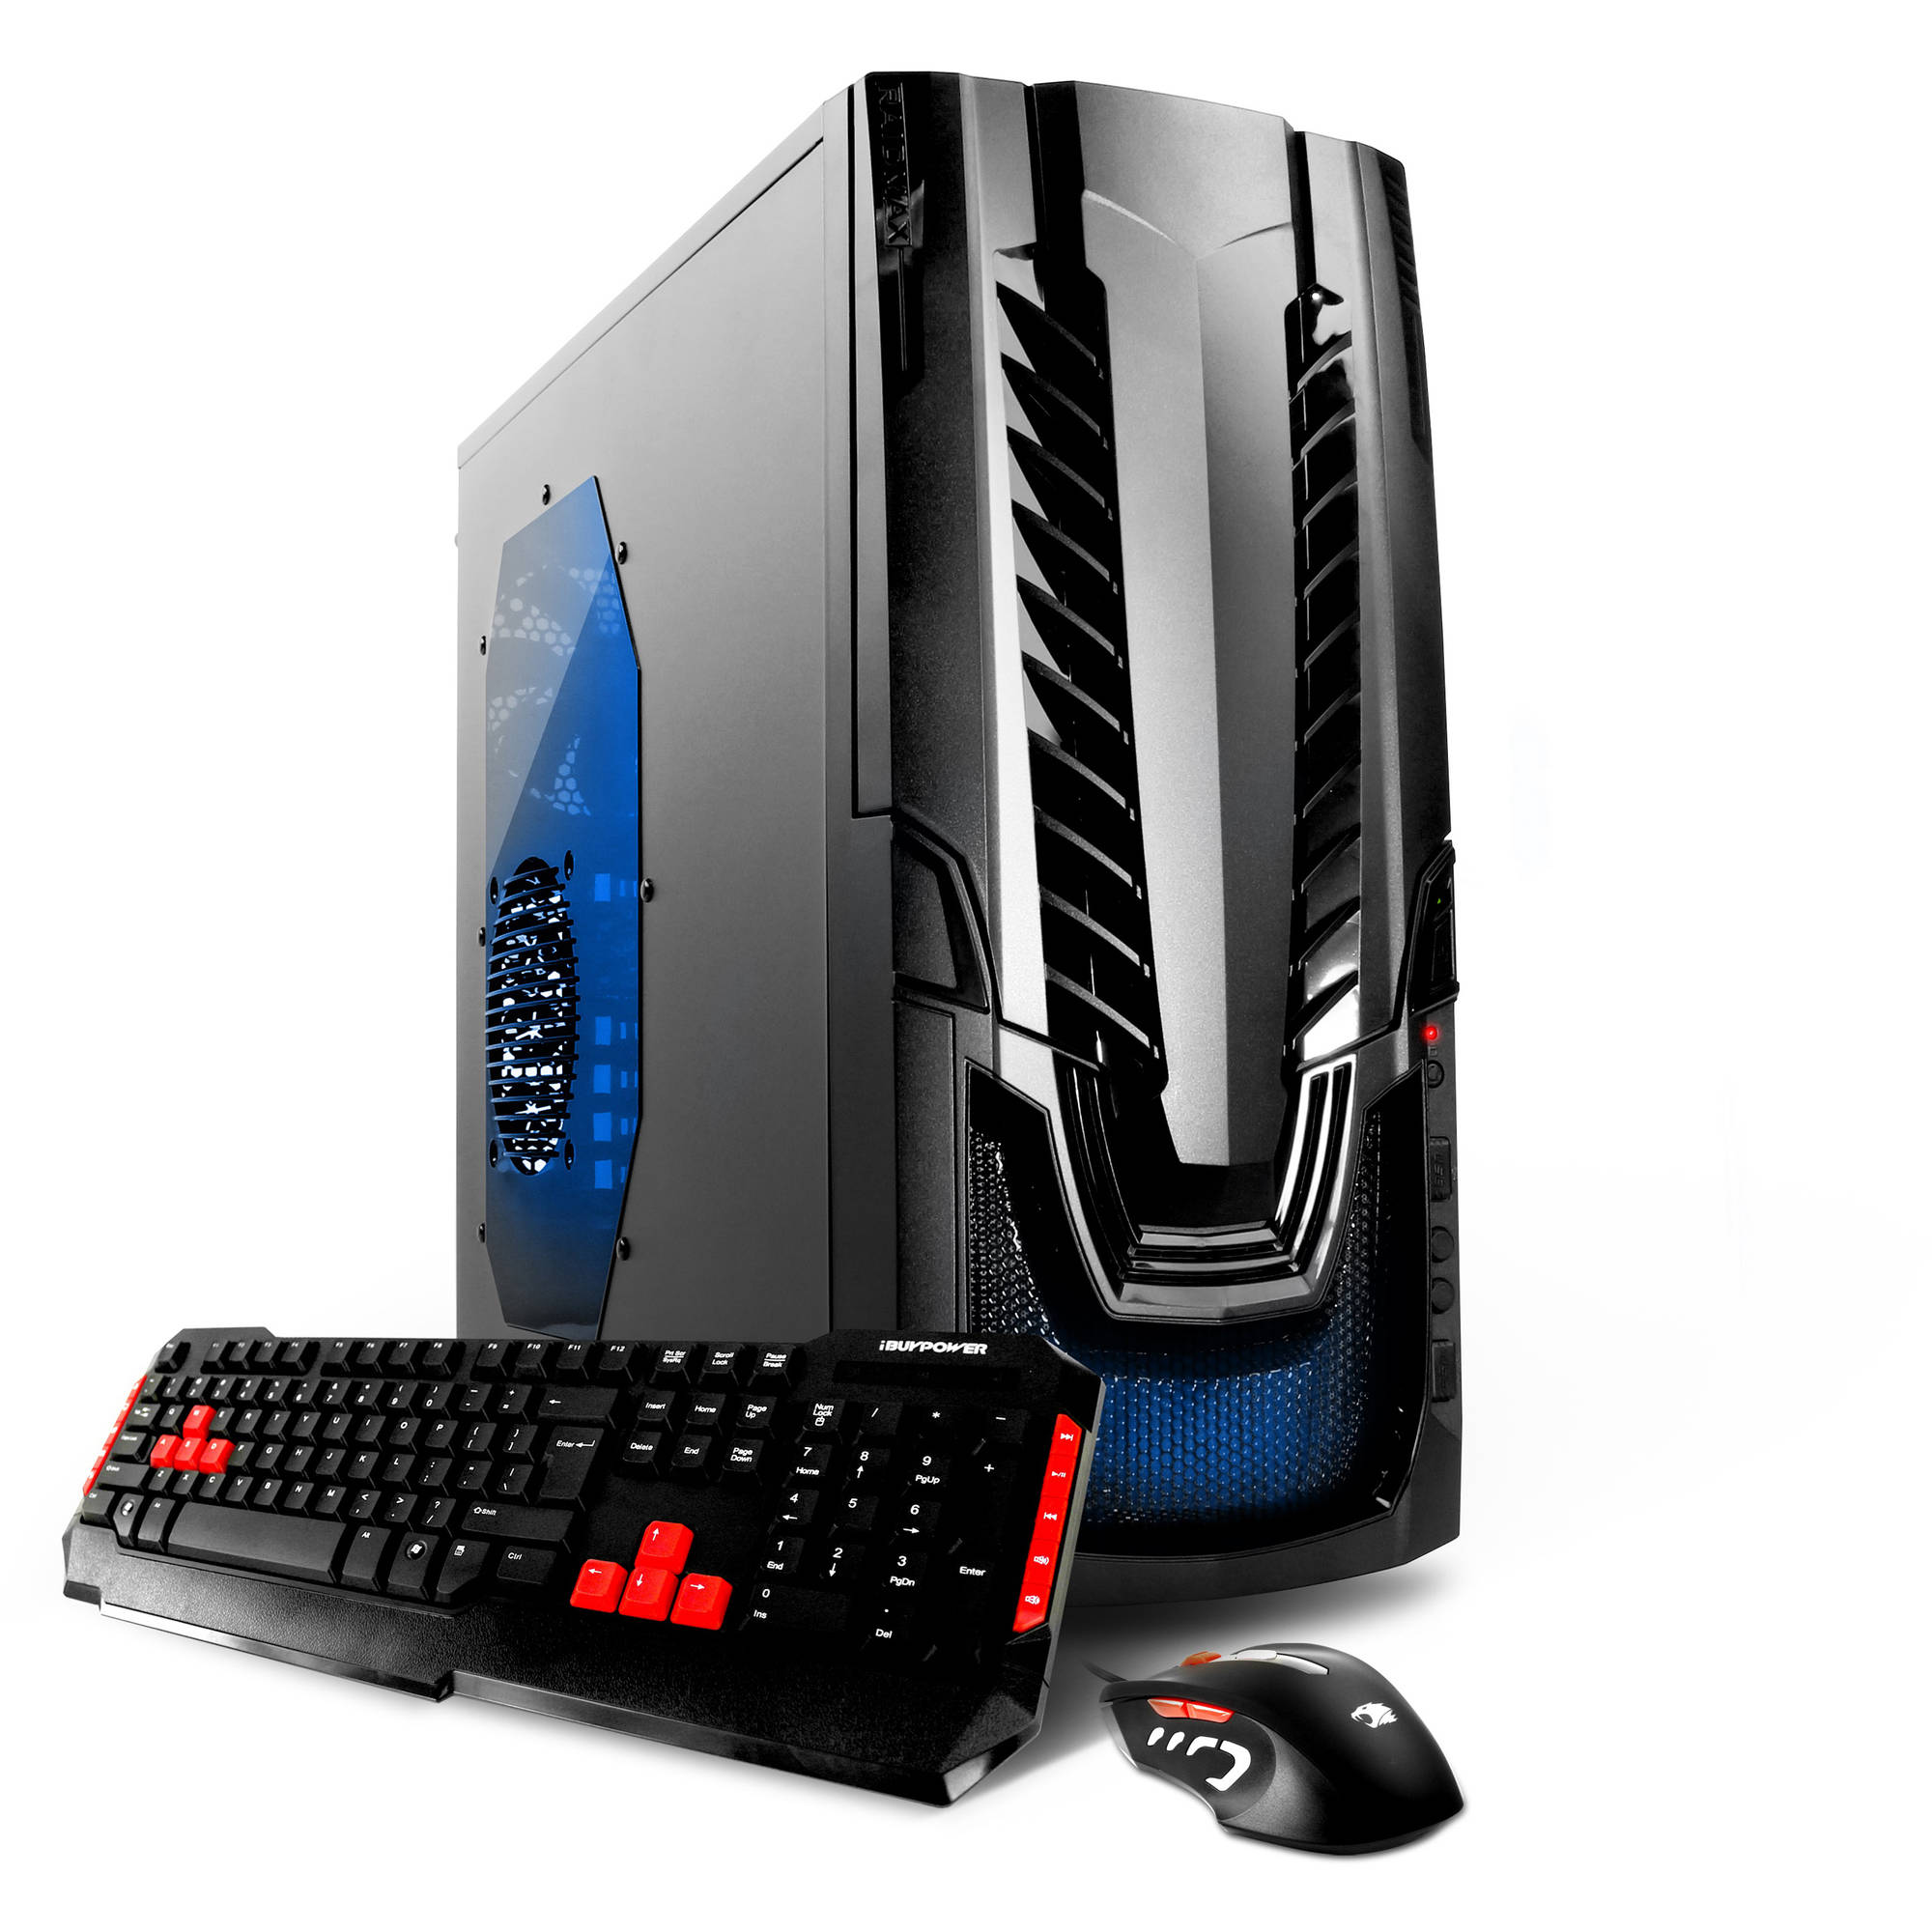 iBUYPOWER WA550G Gaming Desktop PC with AMD FX-4300 Quad-Core Processor, 8GB Memory, 1TB Hard Drive and Windows 10 Home (Monitor Not Included)